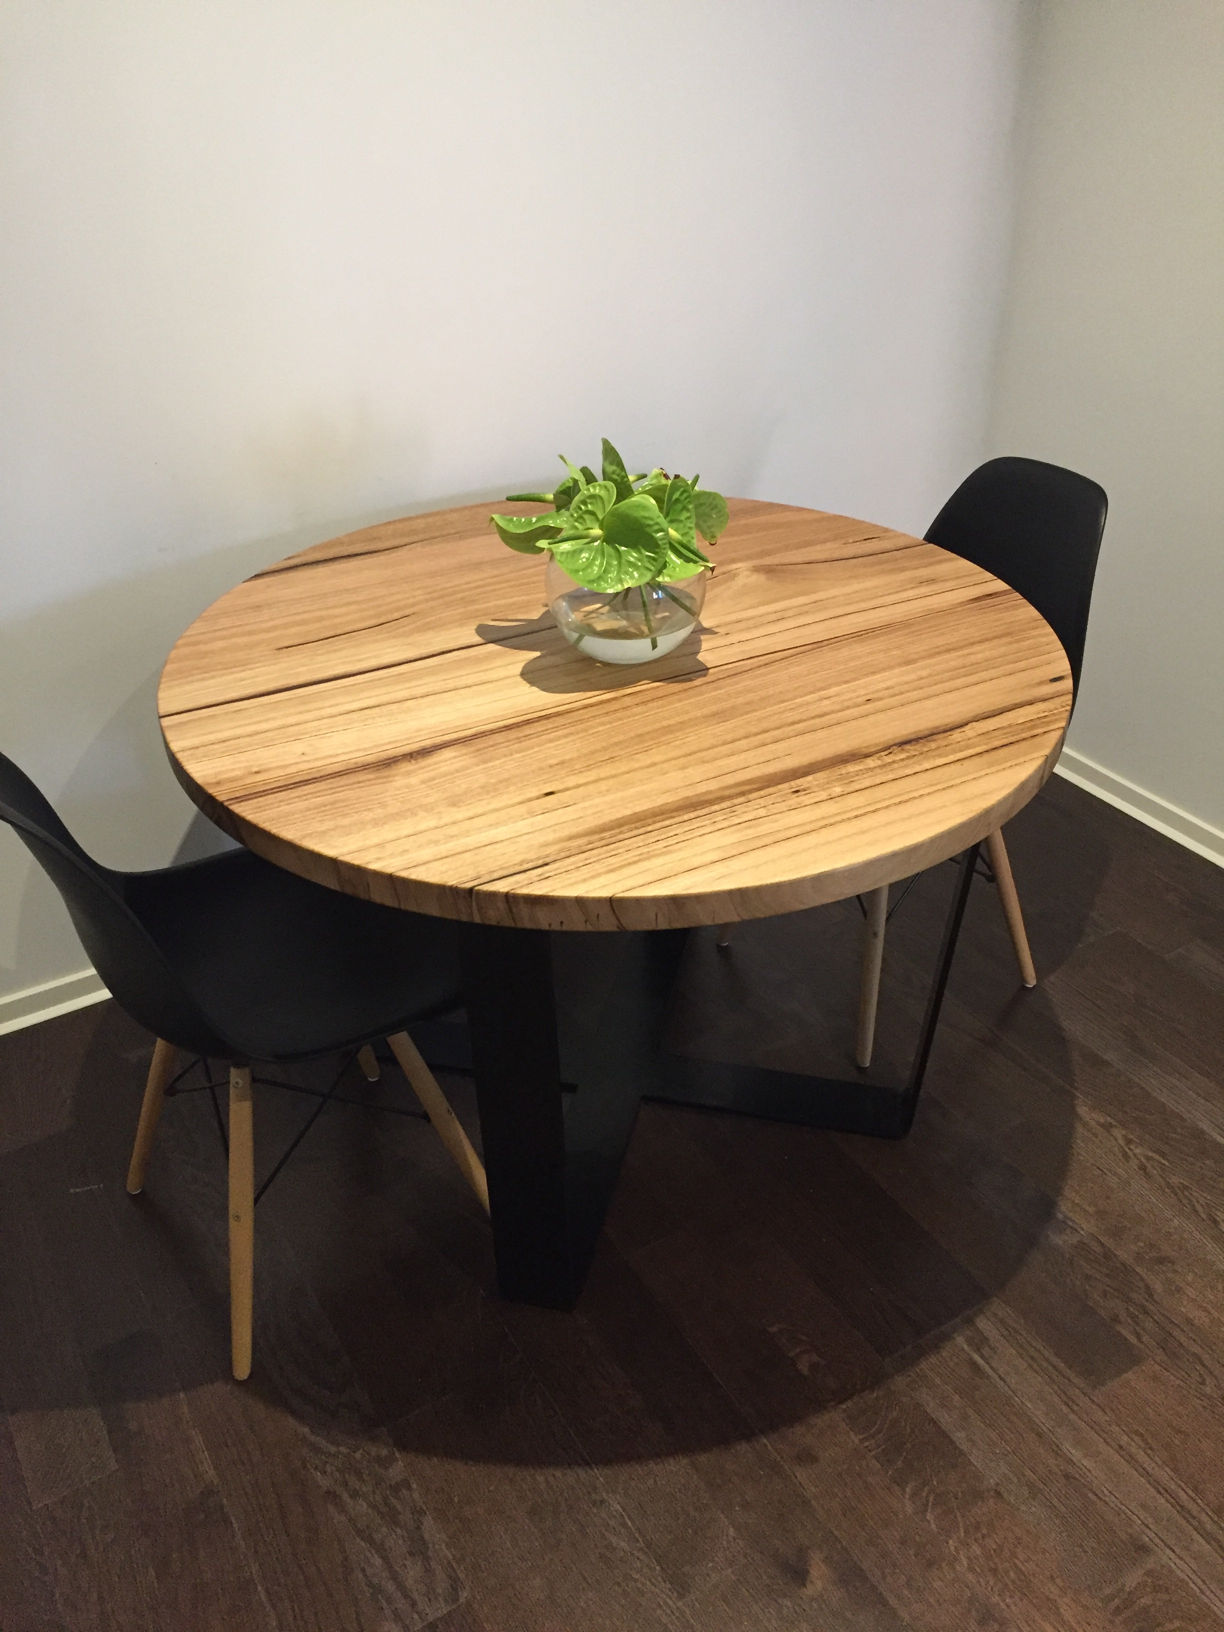 Round dining table Sydney